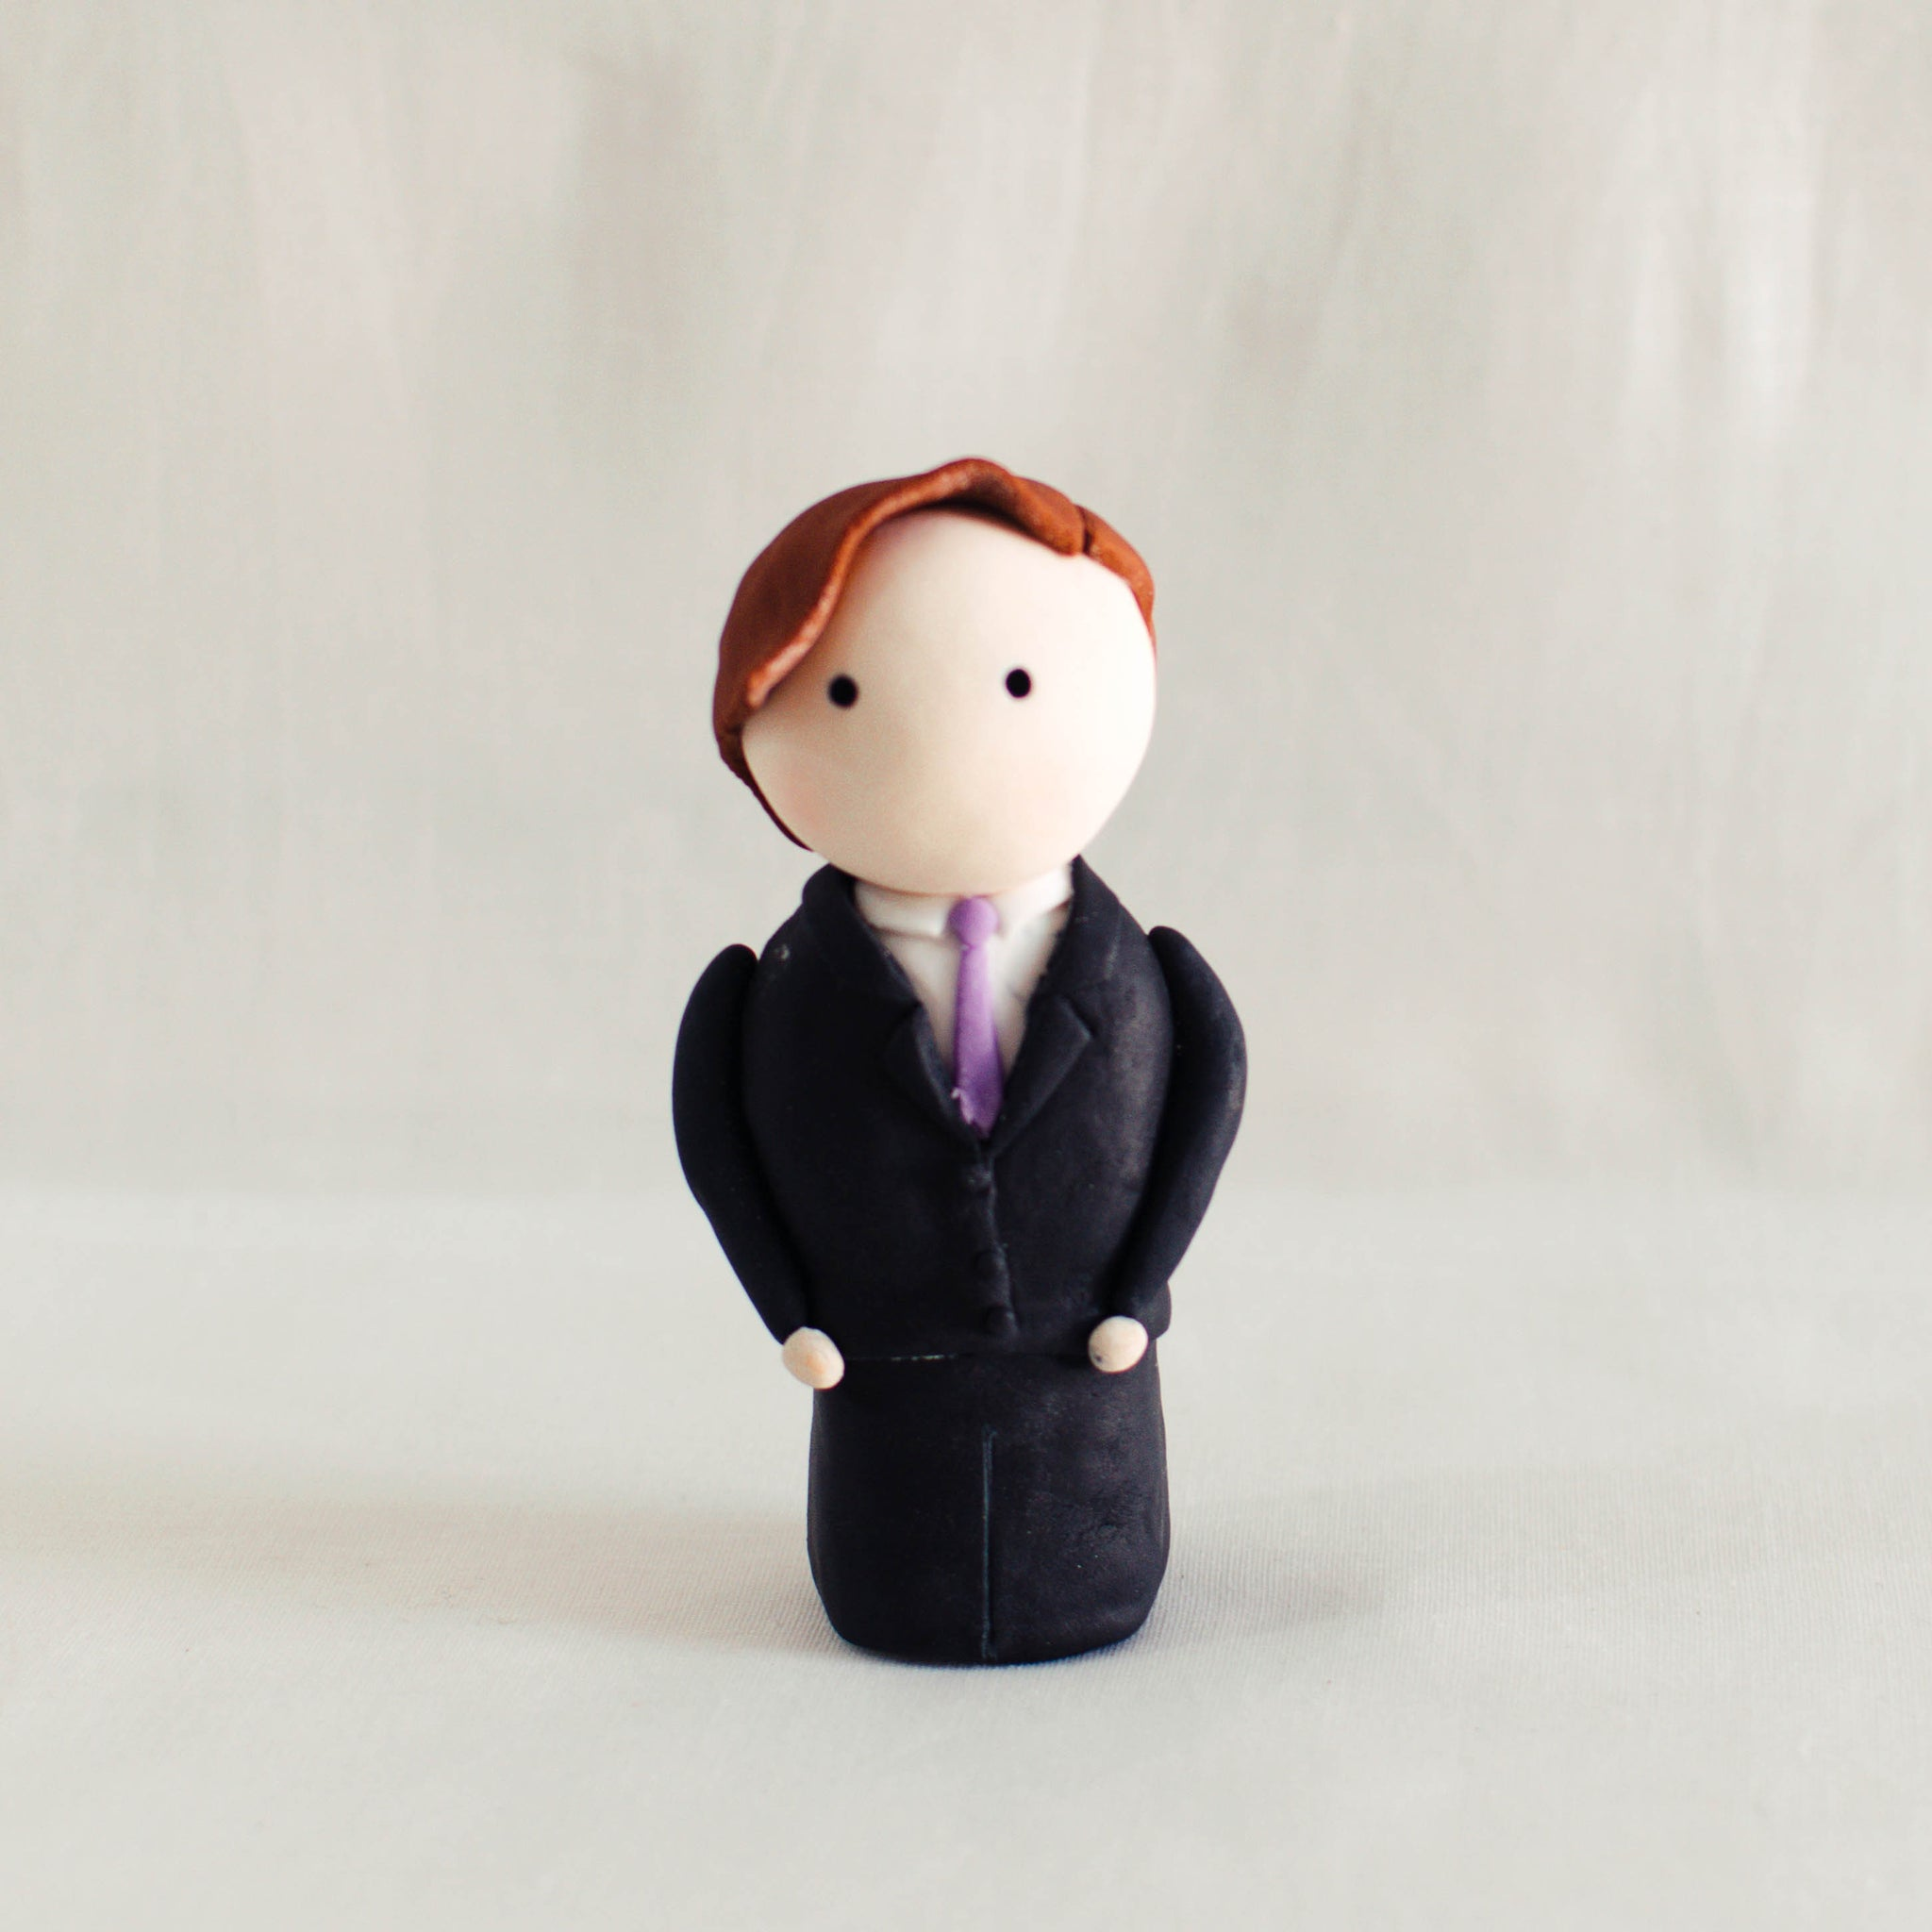 Groom Fondant Topper - Custom Bakes by Edith Patisserie